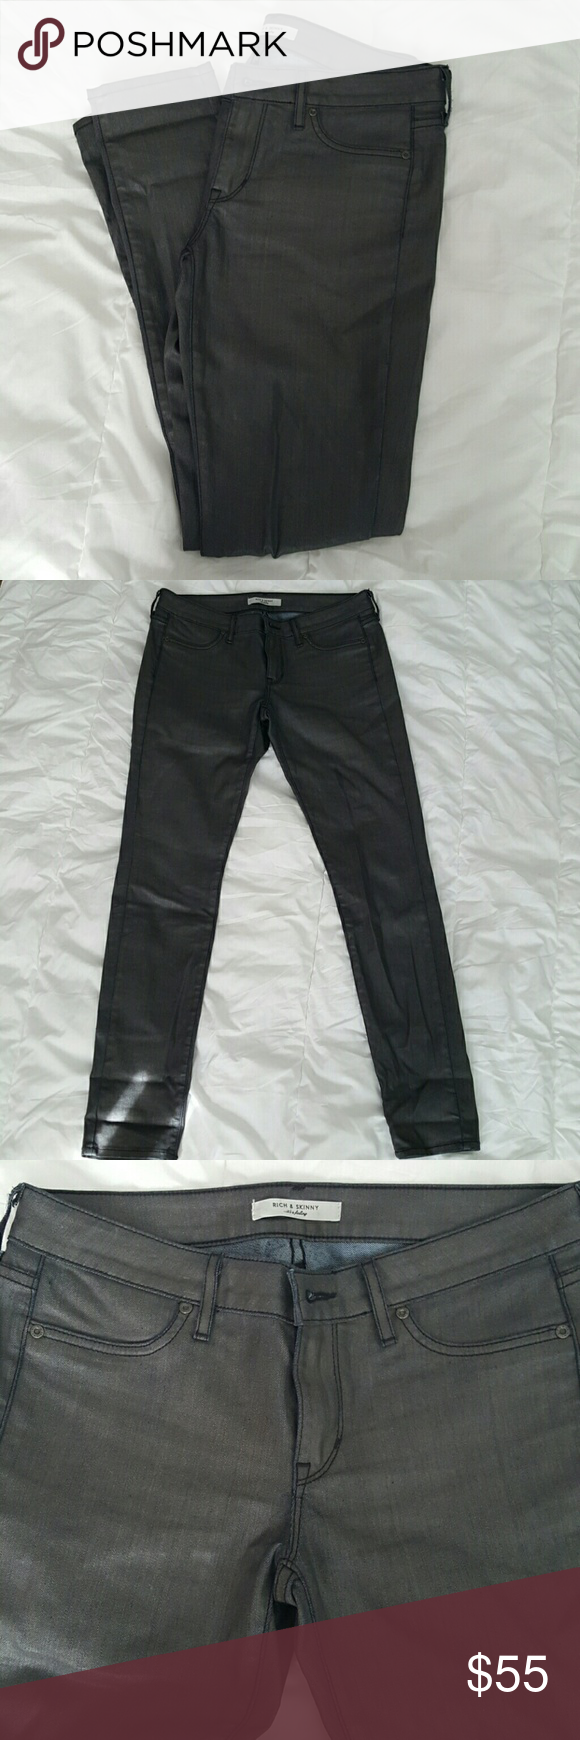 Rich and skinny liberty jeans